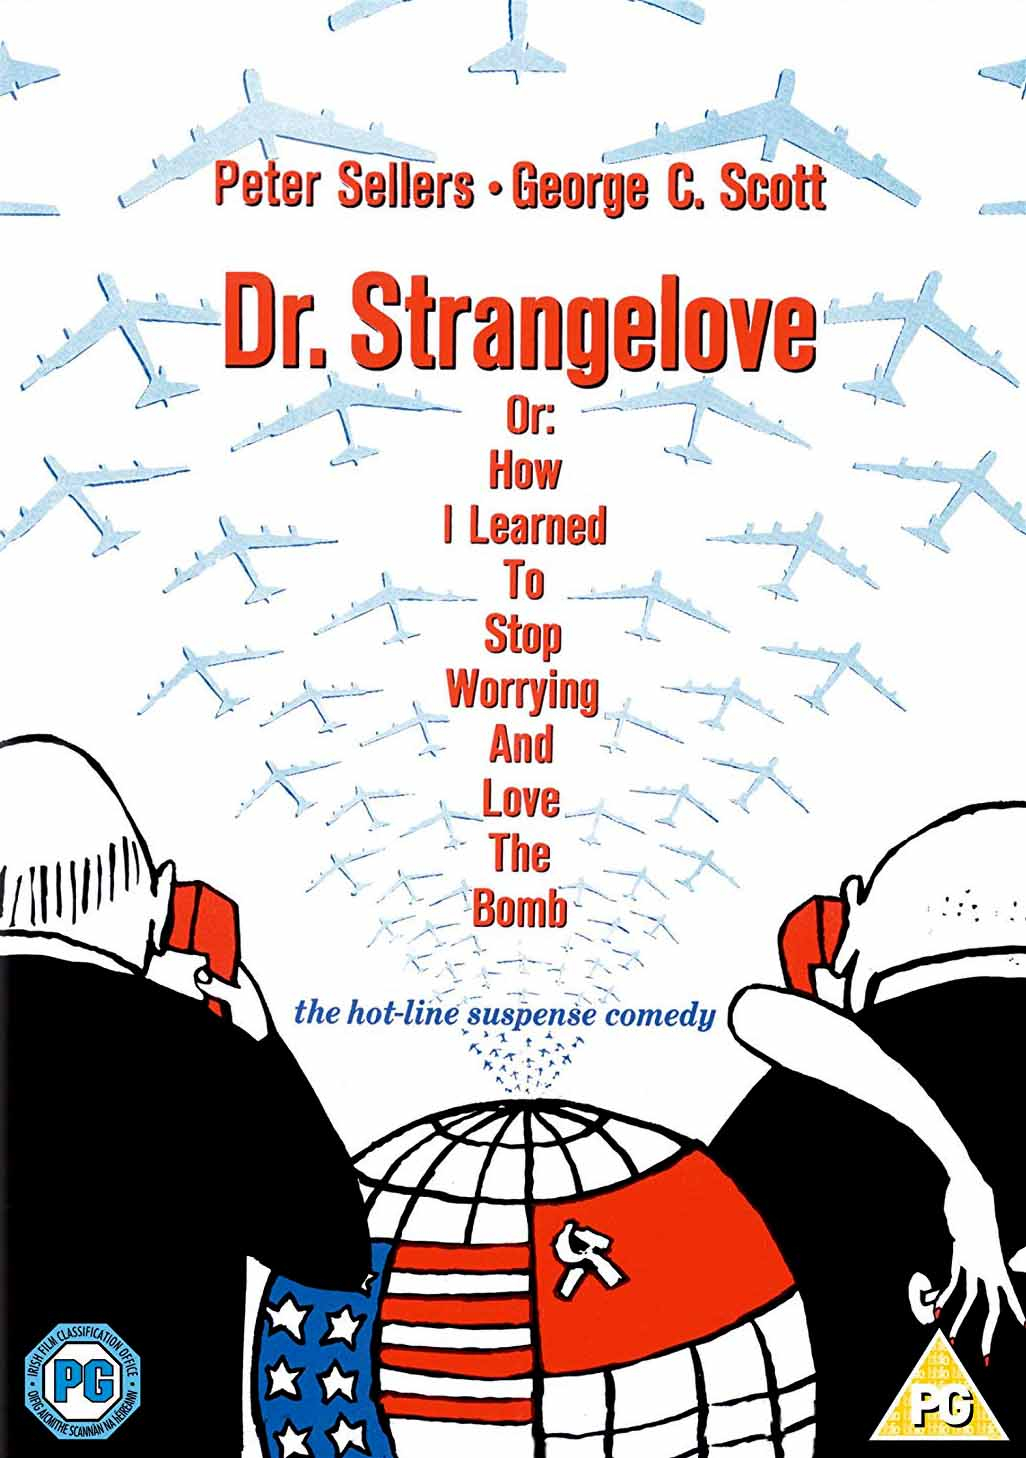 Buy Dr. Strangelove, or: How I Learned to Stop Worrying and Love the Bomb